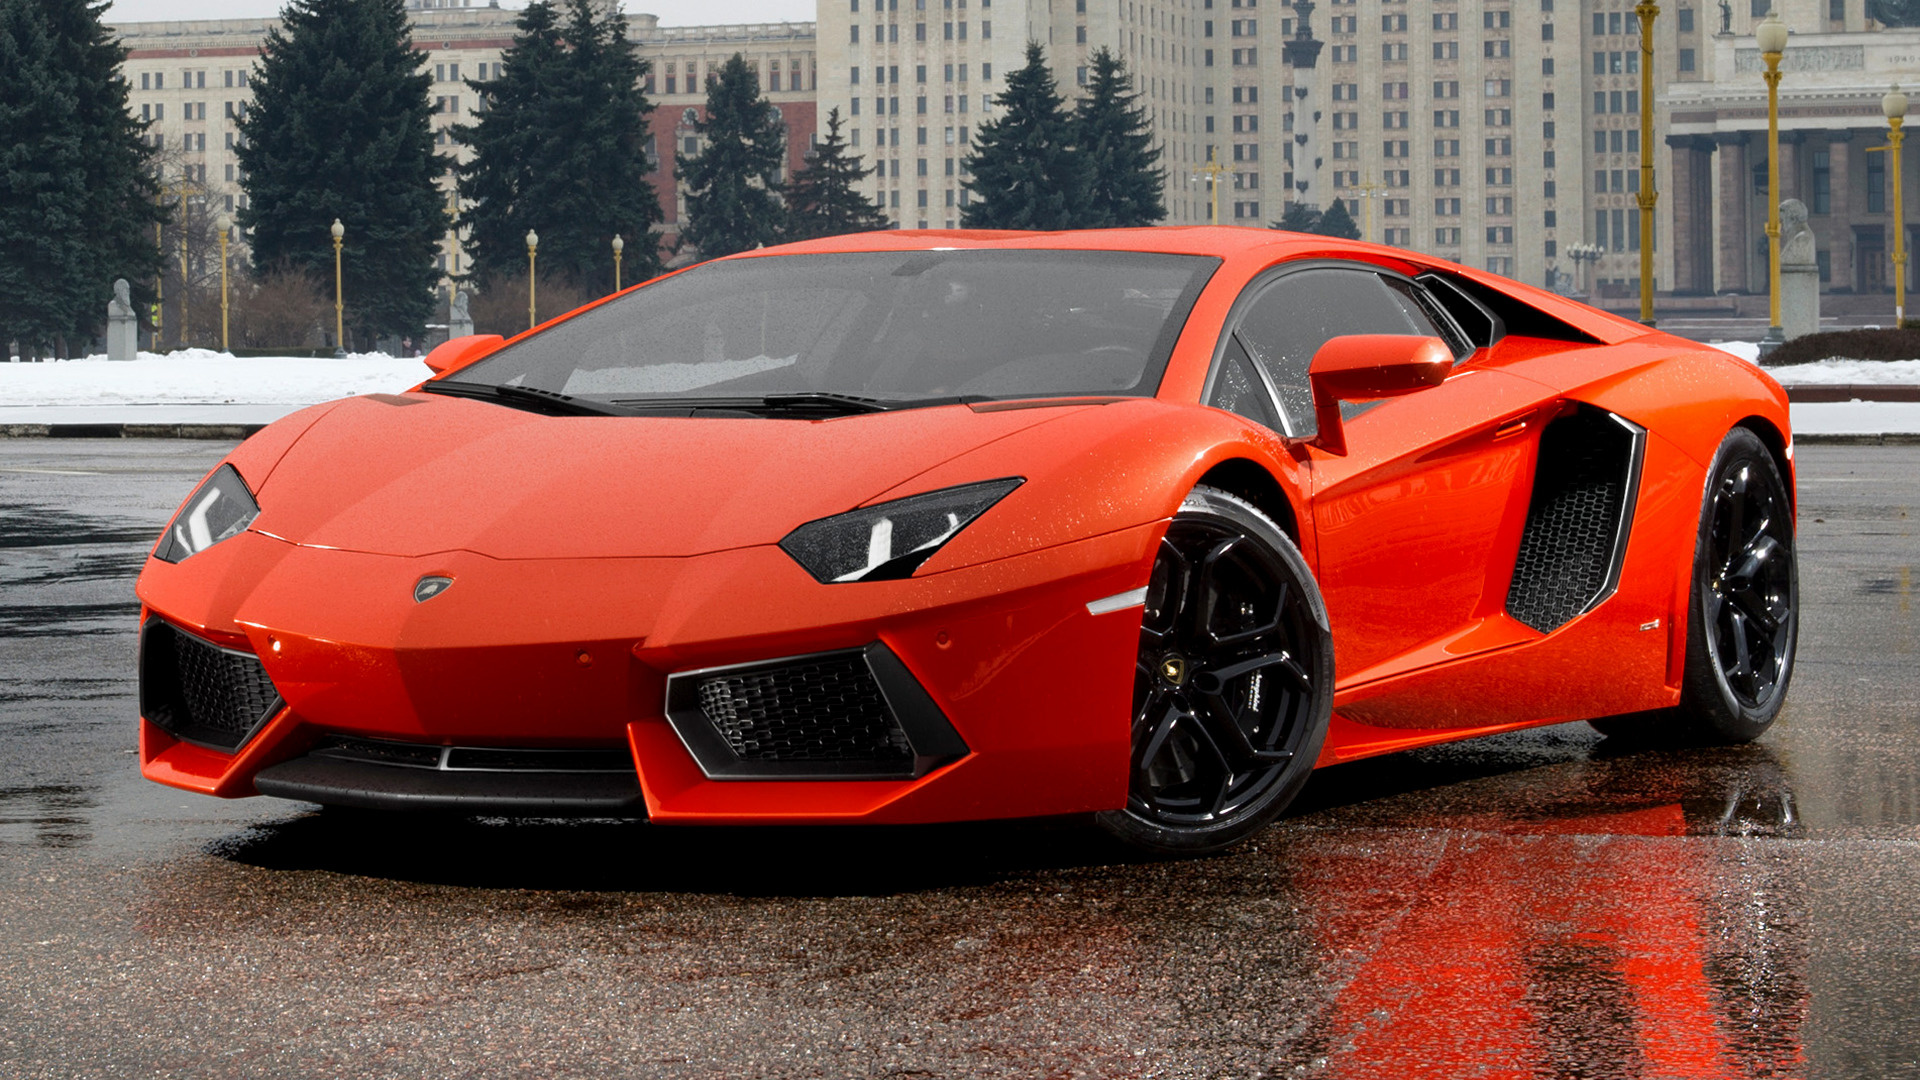 Lamborghini Aventador Lp 700 4 2011 Wallpapers And Hd